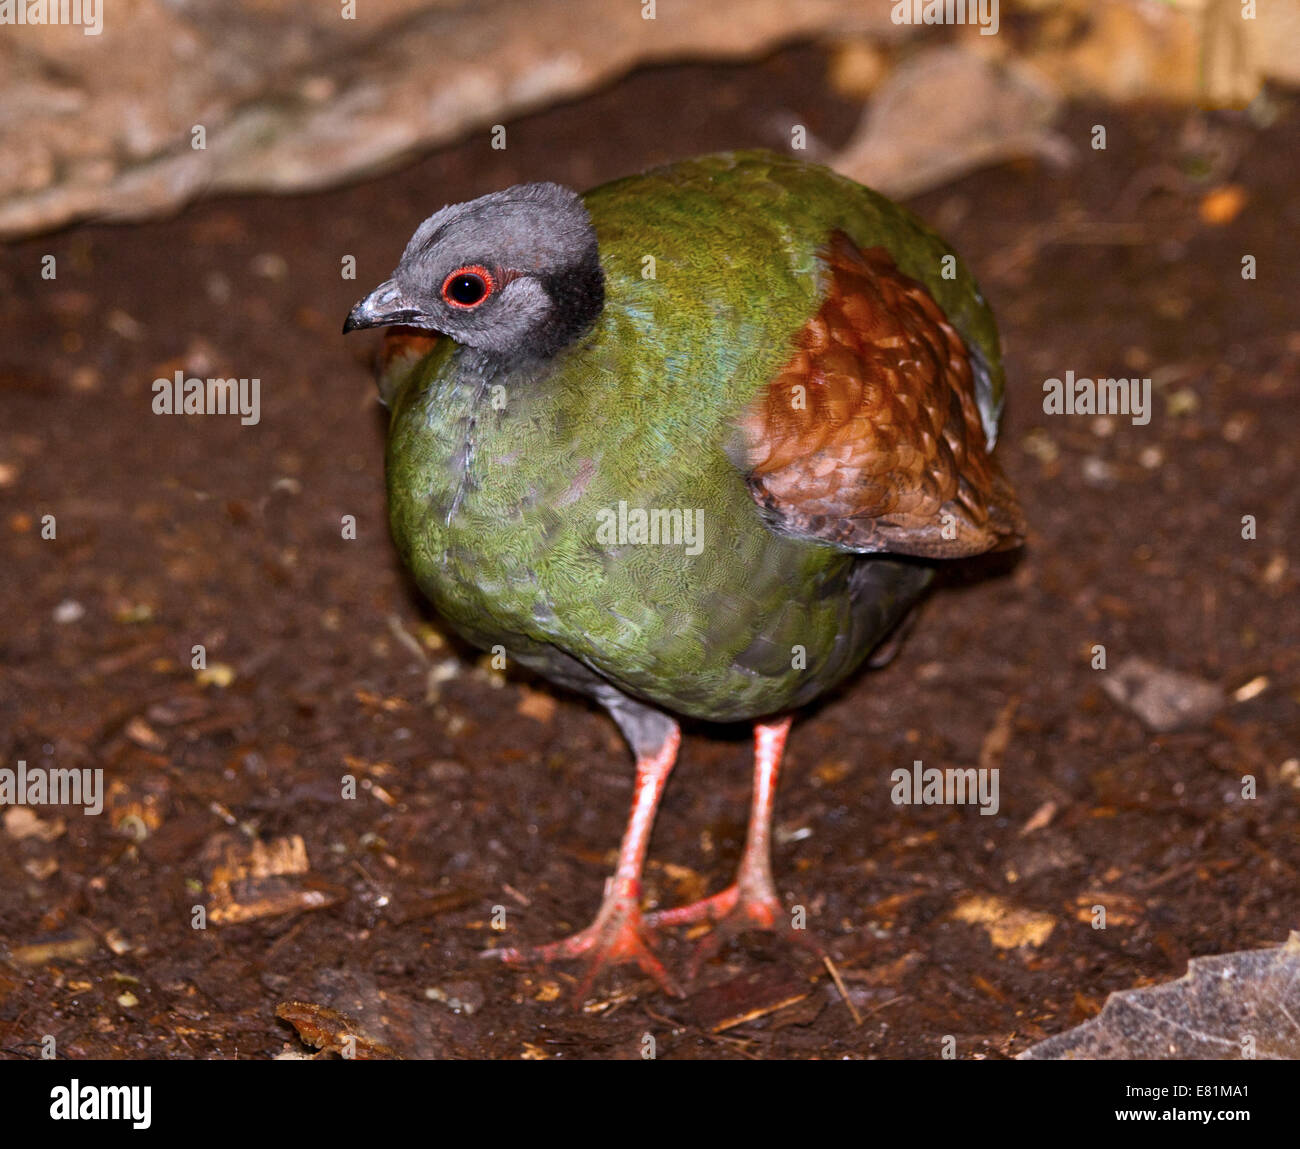 Crested Wood Partridge / Roul Roul Partridge (rollulus rouloul) female - Stock Image